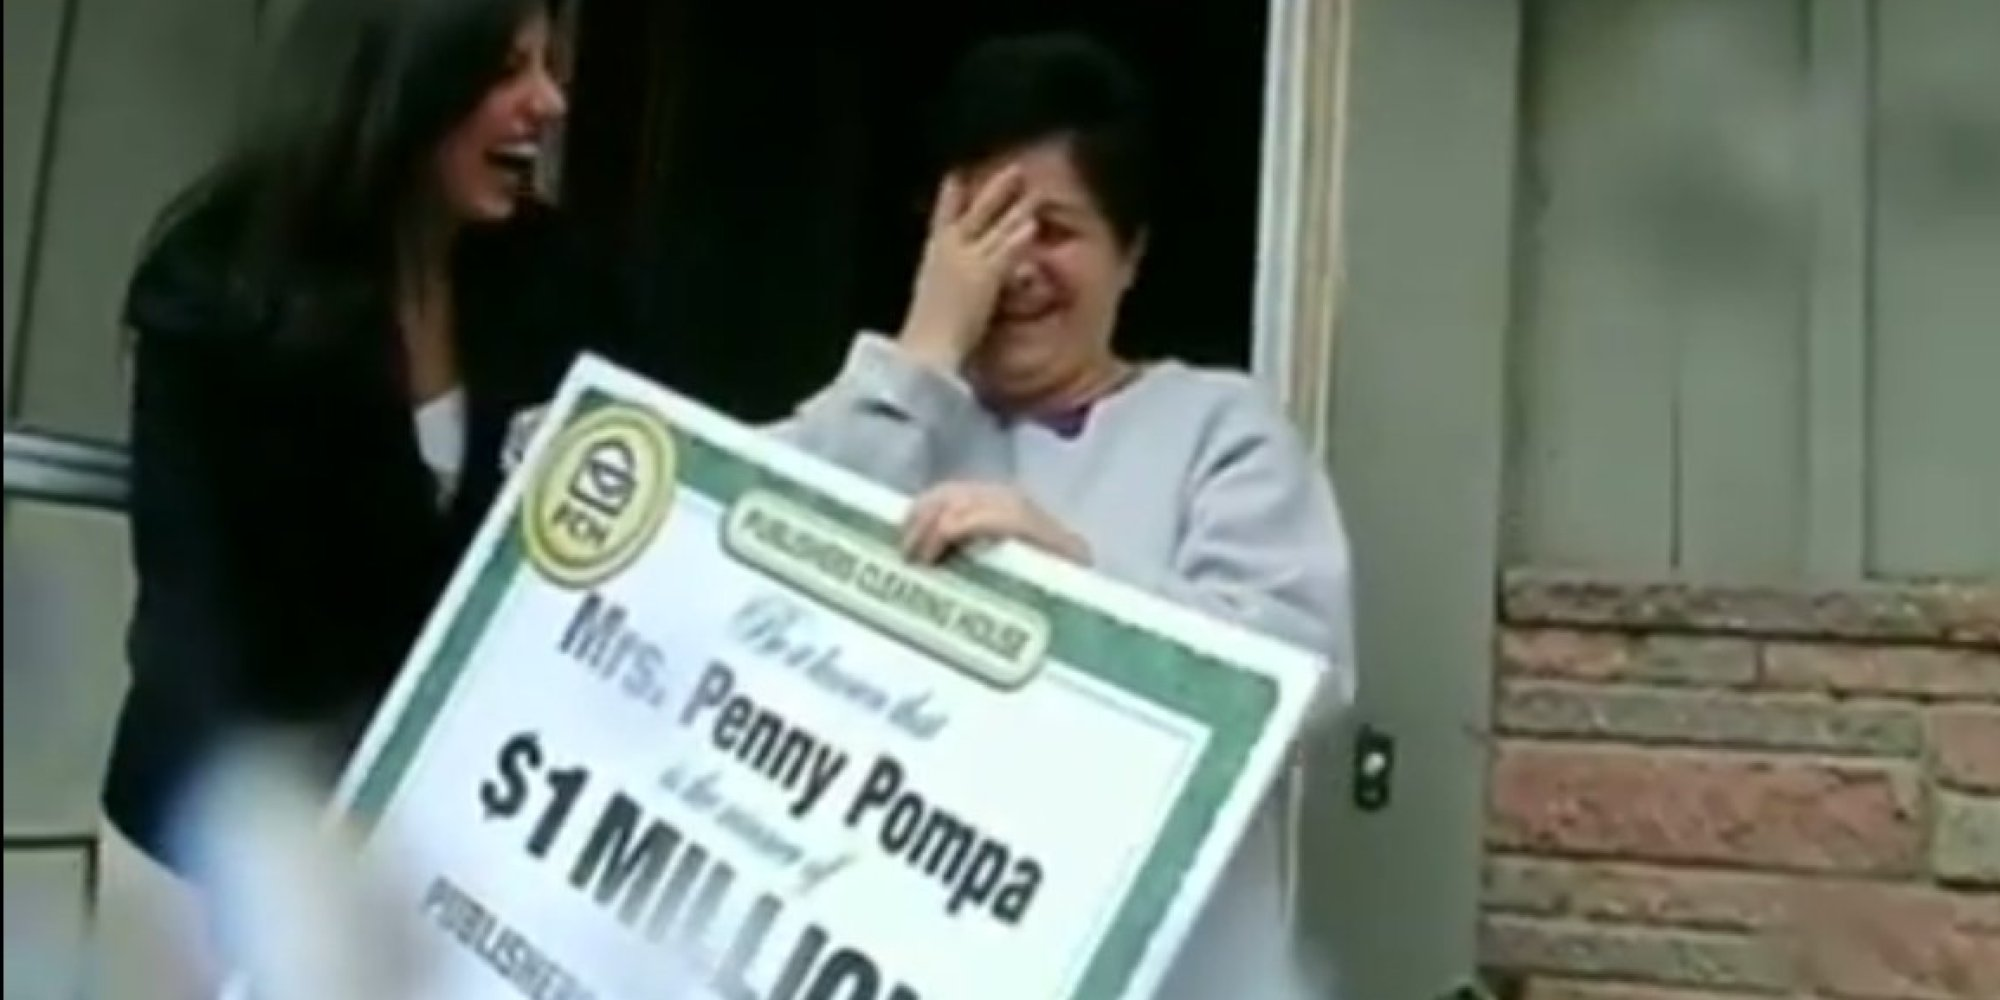 Woman About To Lose Her House Wins $1 Million, Reacts Appropriately |  HuffPost